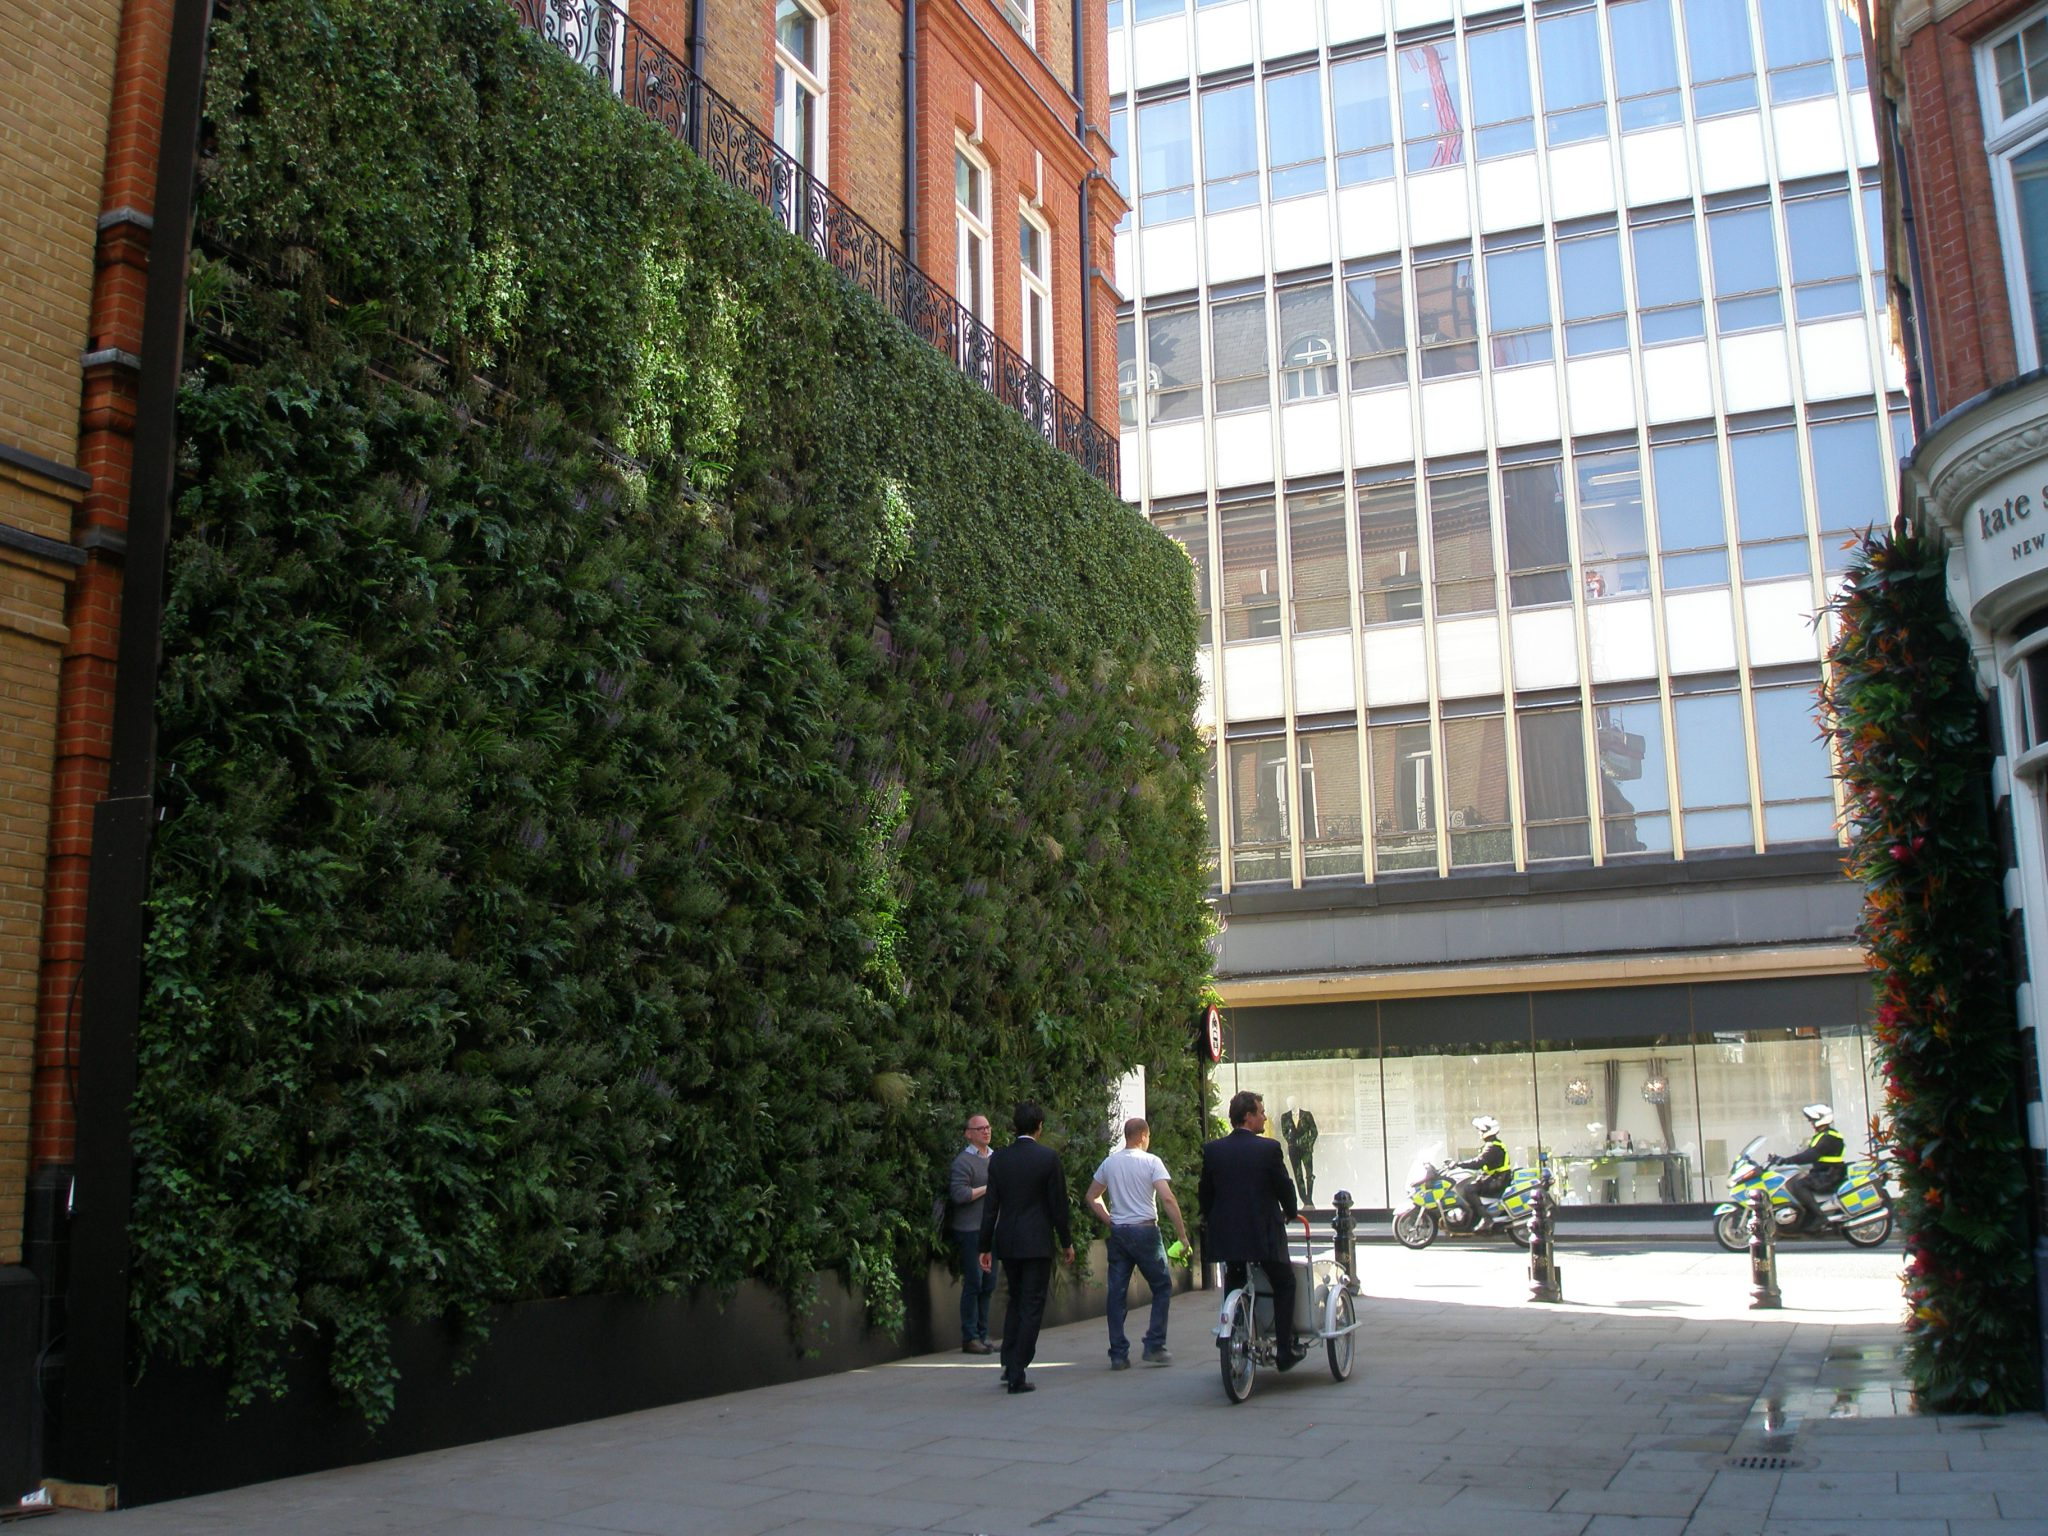 The Green Wall continued around the corner, to the pedestrian mall on Pavilion Road. The Symons Street elevation of the Peter Jones Department Store is visible at the end of the mall.